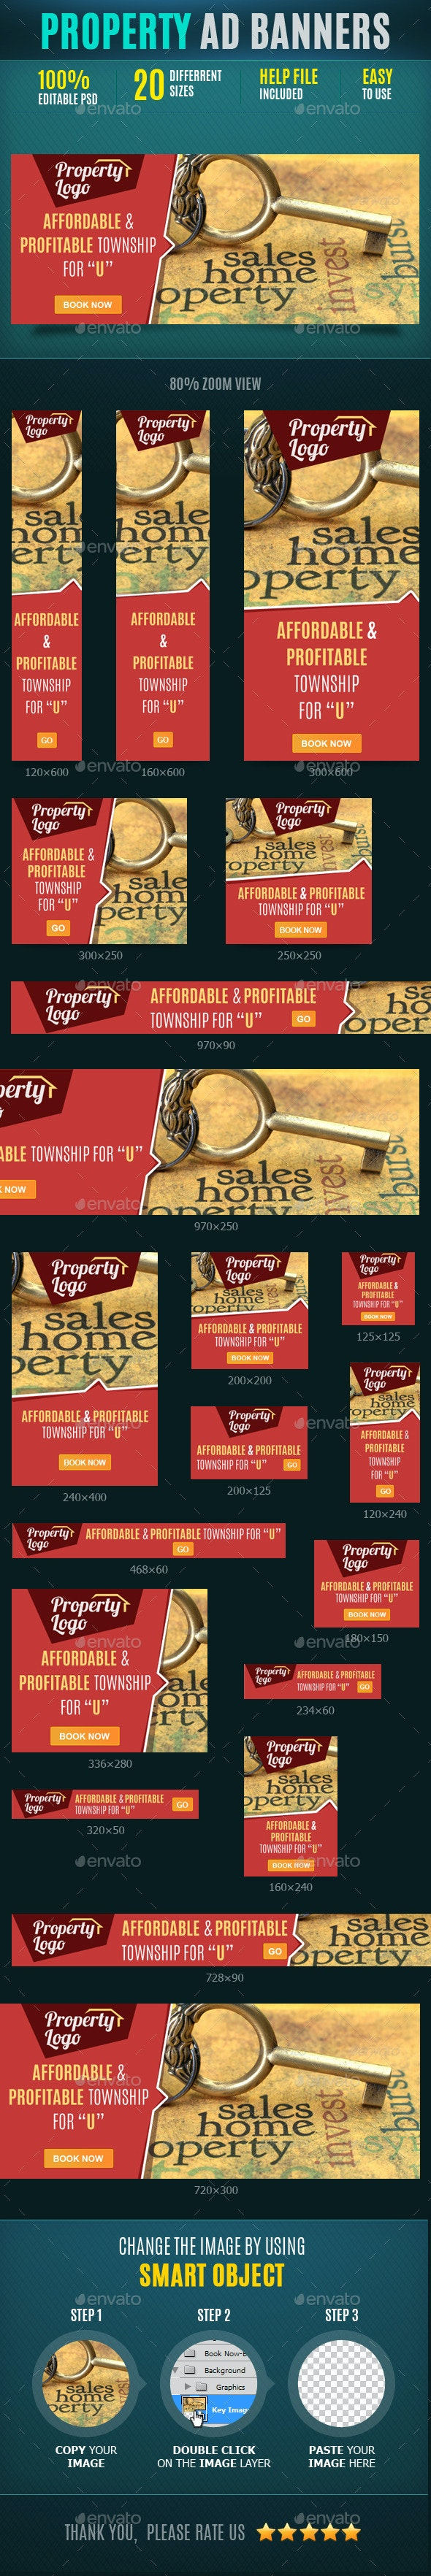 Property Web Banners - Banners & Ads Web Elements